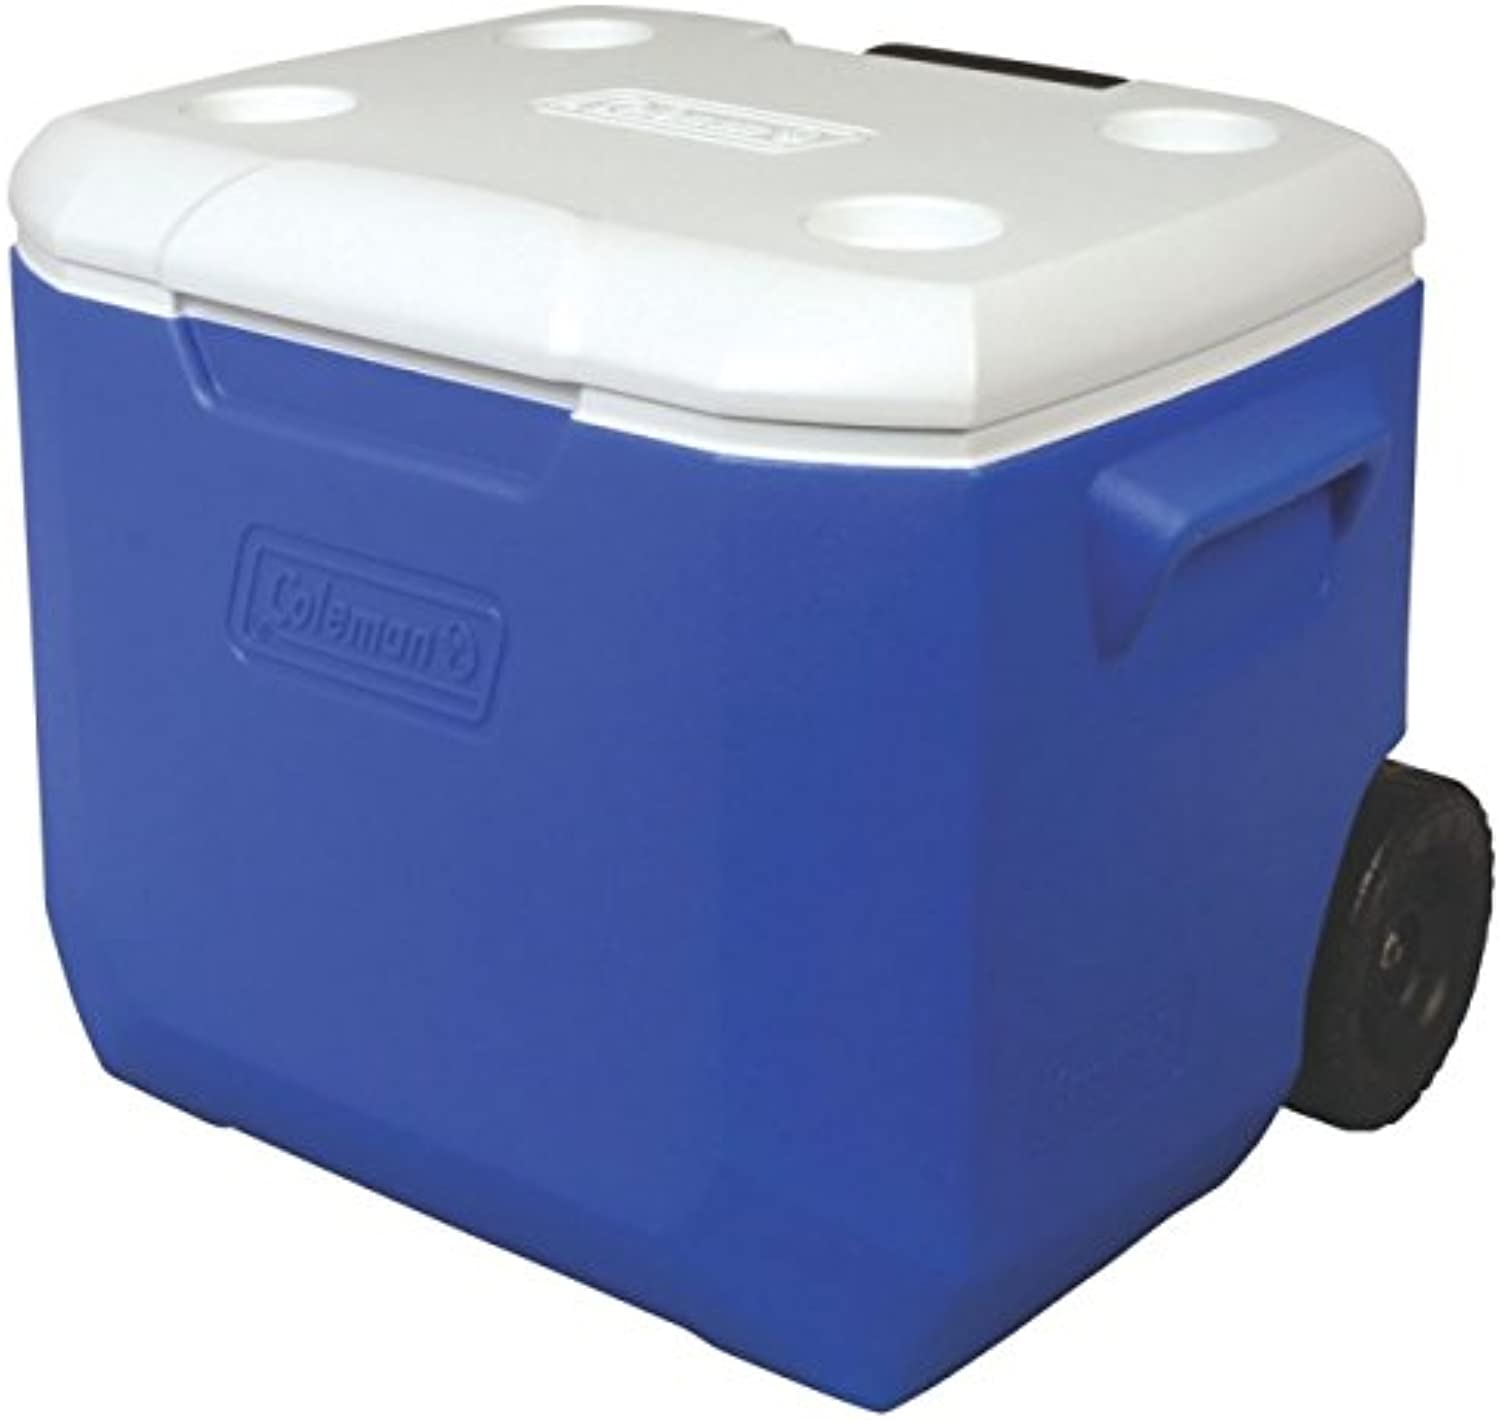 Wheeled Chest Cooler, 60 qt, bluee, White